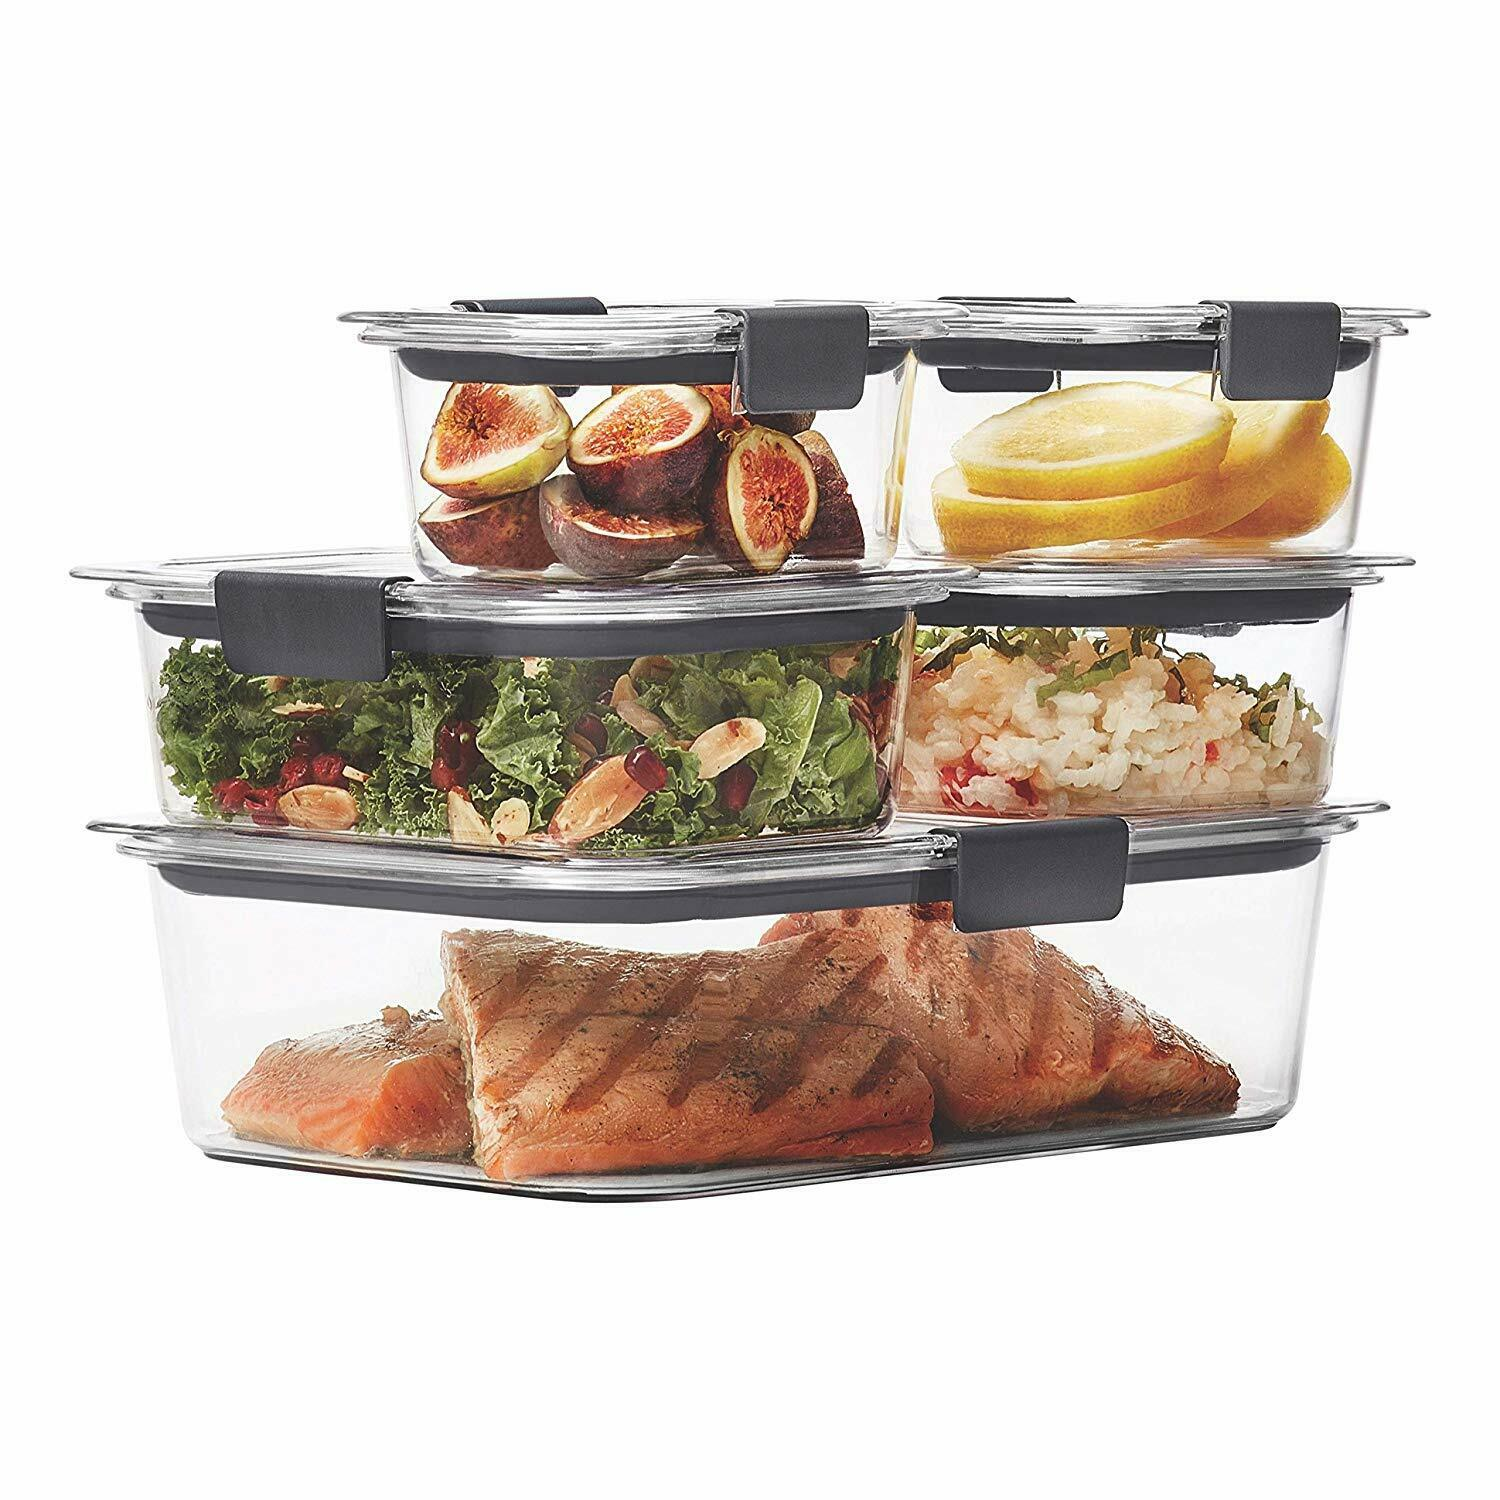 Rubbermaid Brilliance Leak-Proof Food Storage Containers with Airtight Lids Set5 1